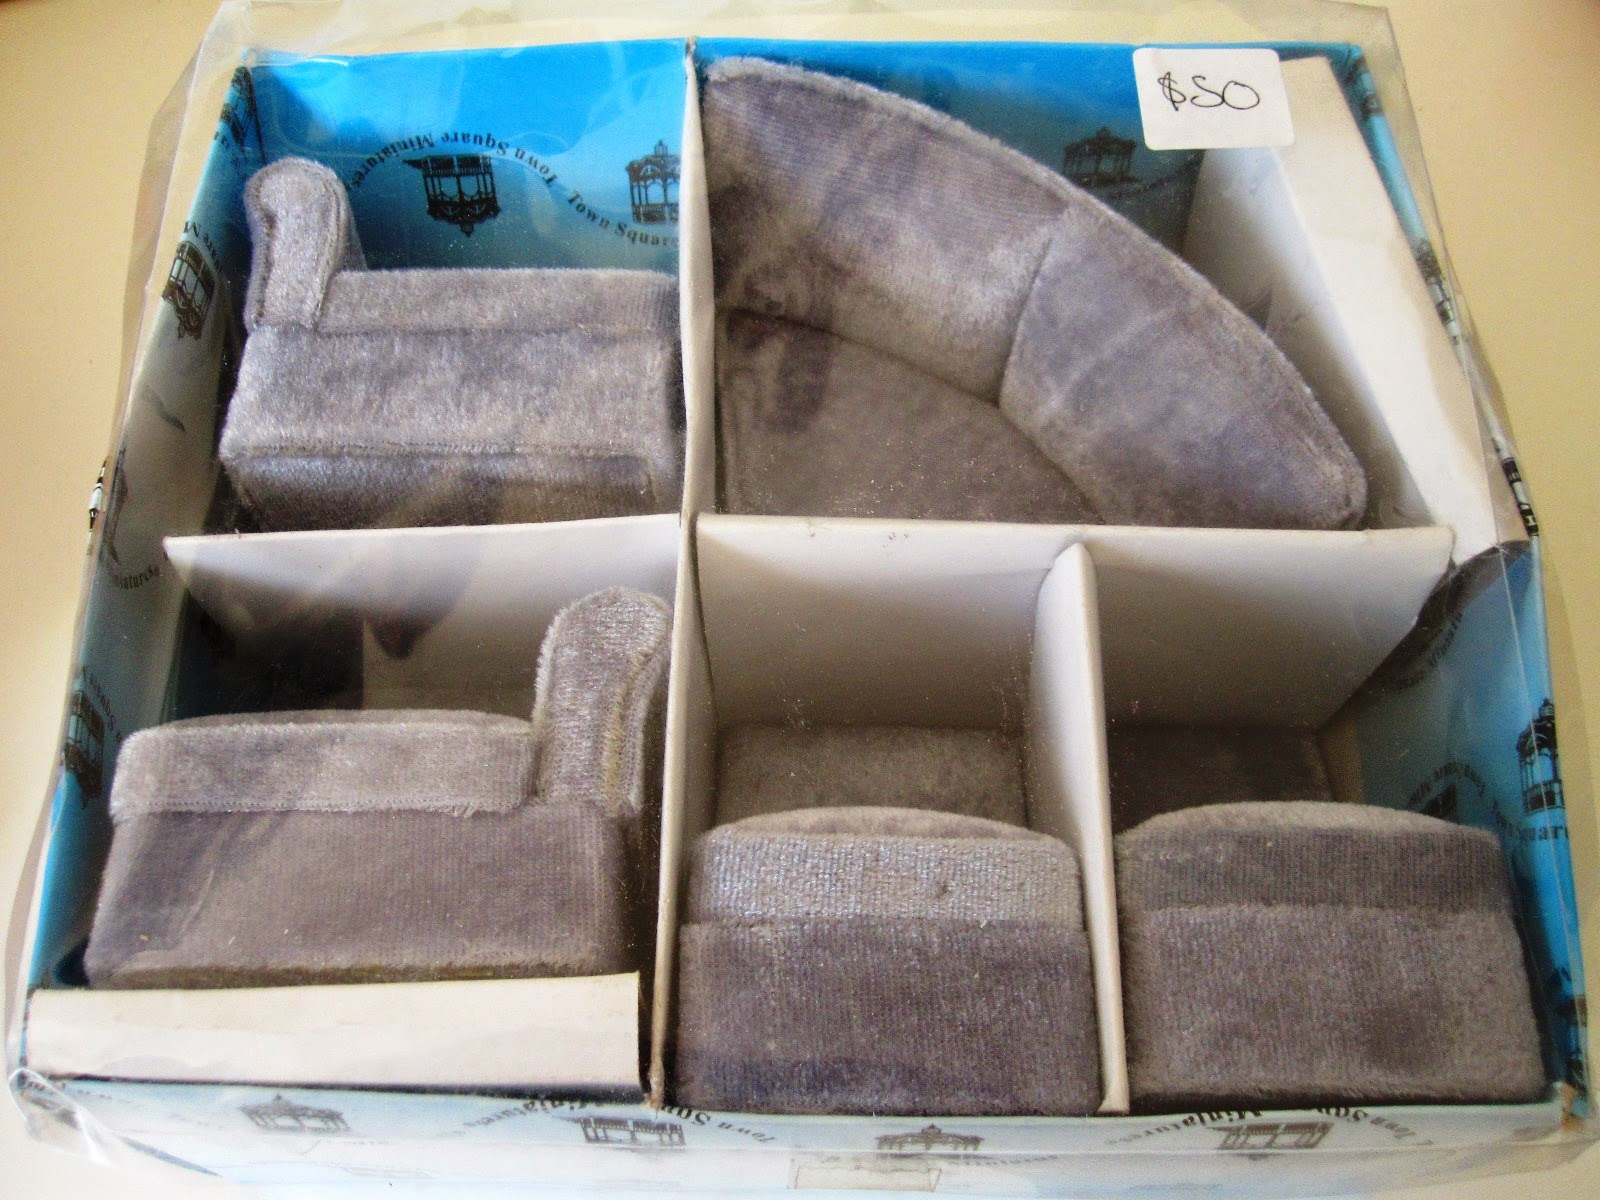 Modern miniature five piece grey velvet modular sofa set by Town Square Miniatures, in package.